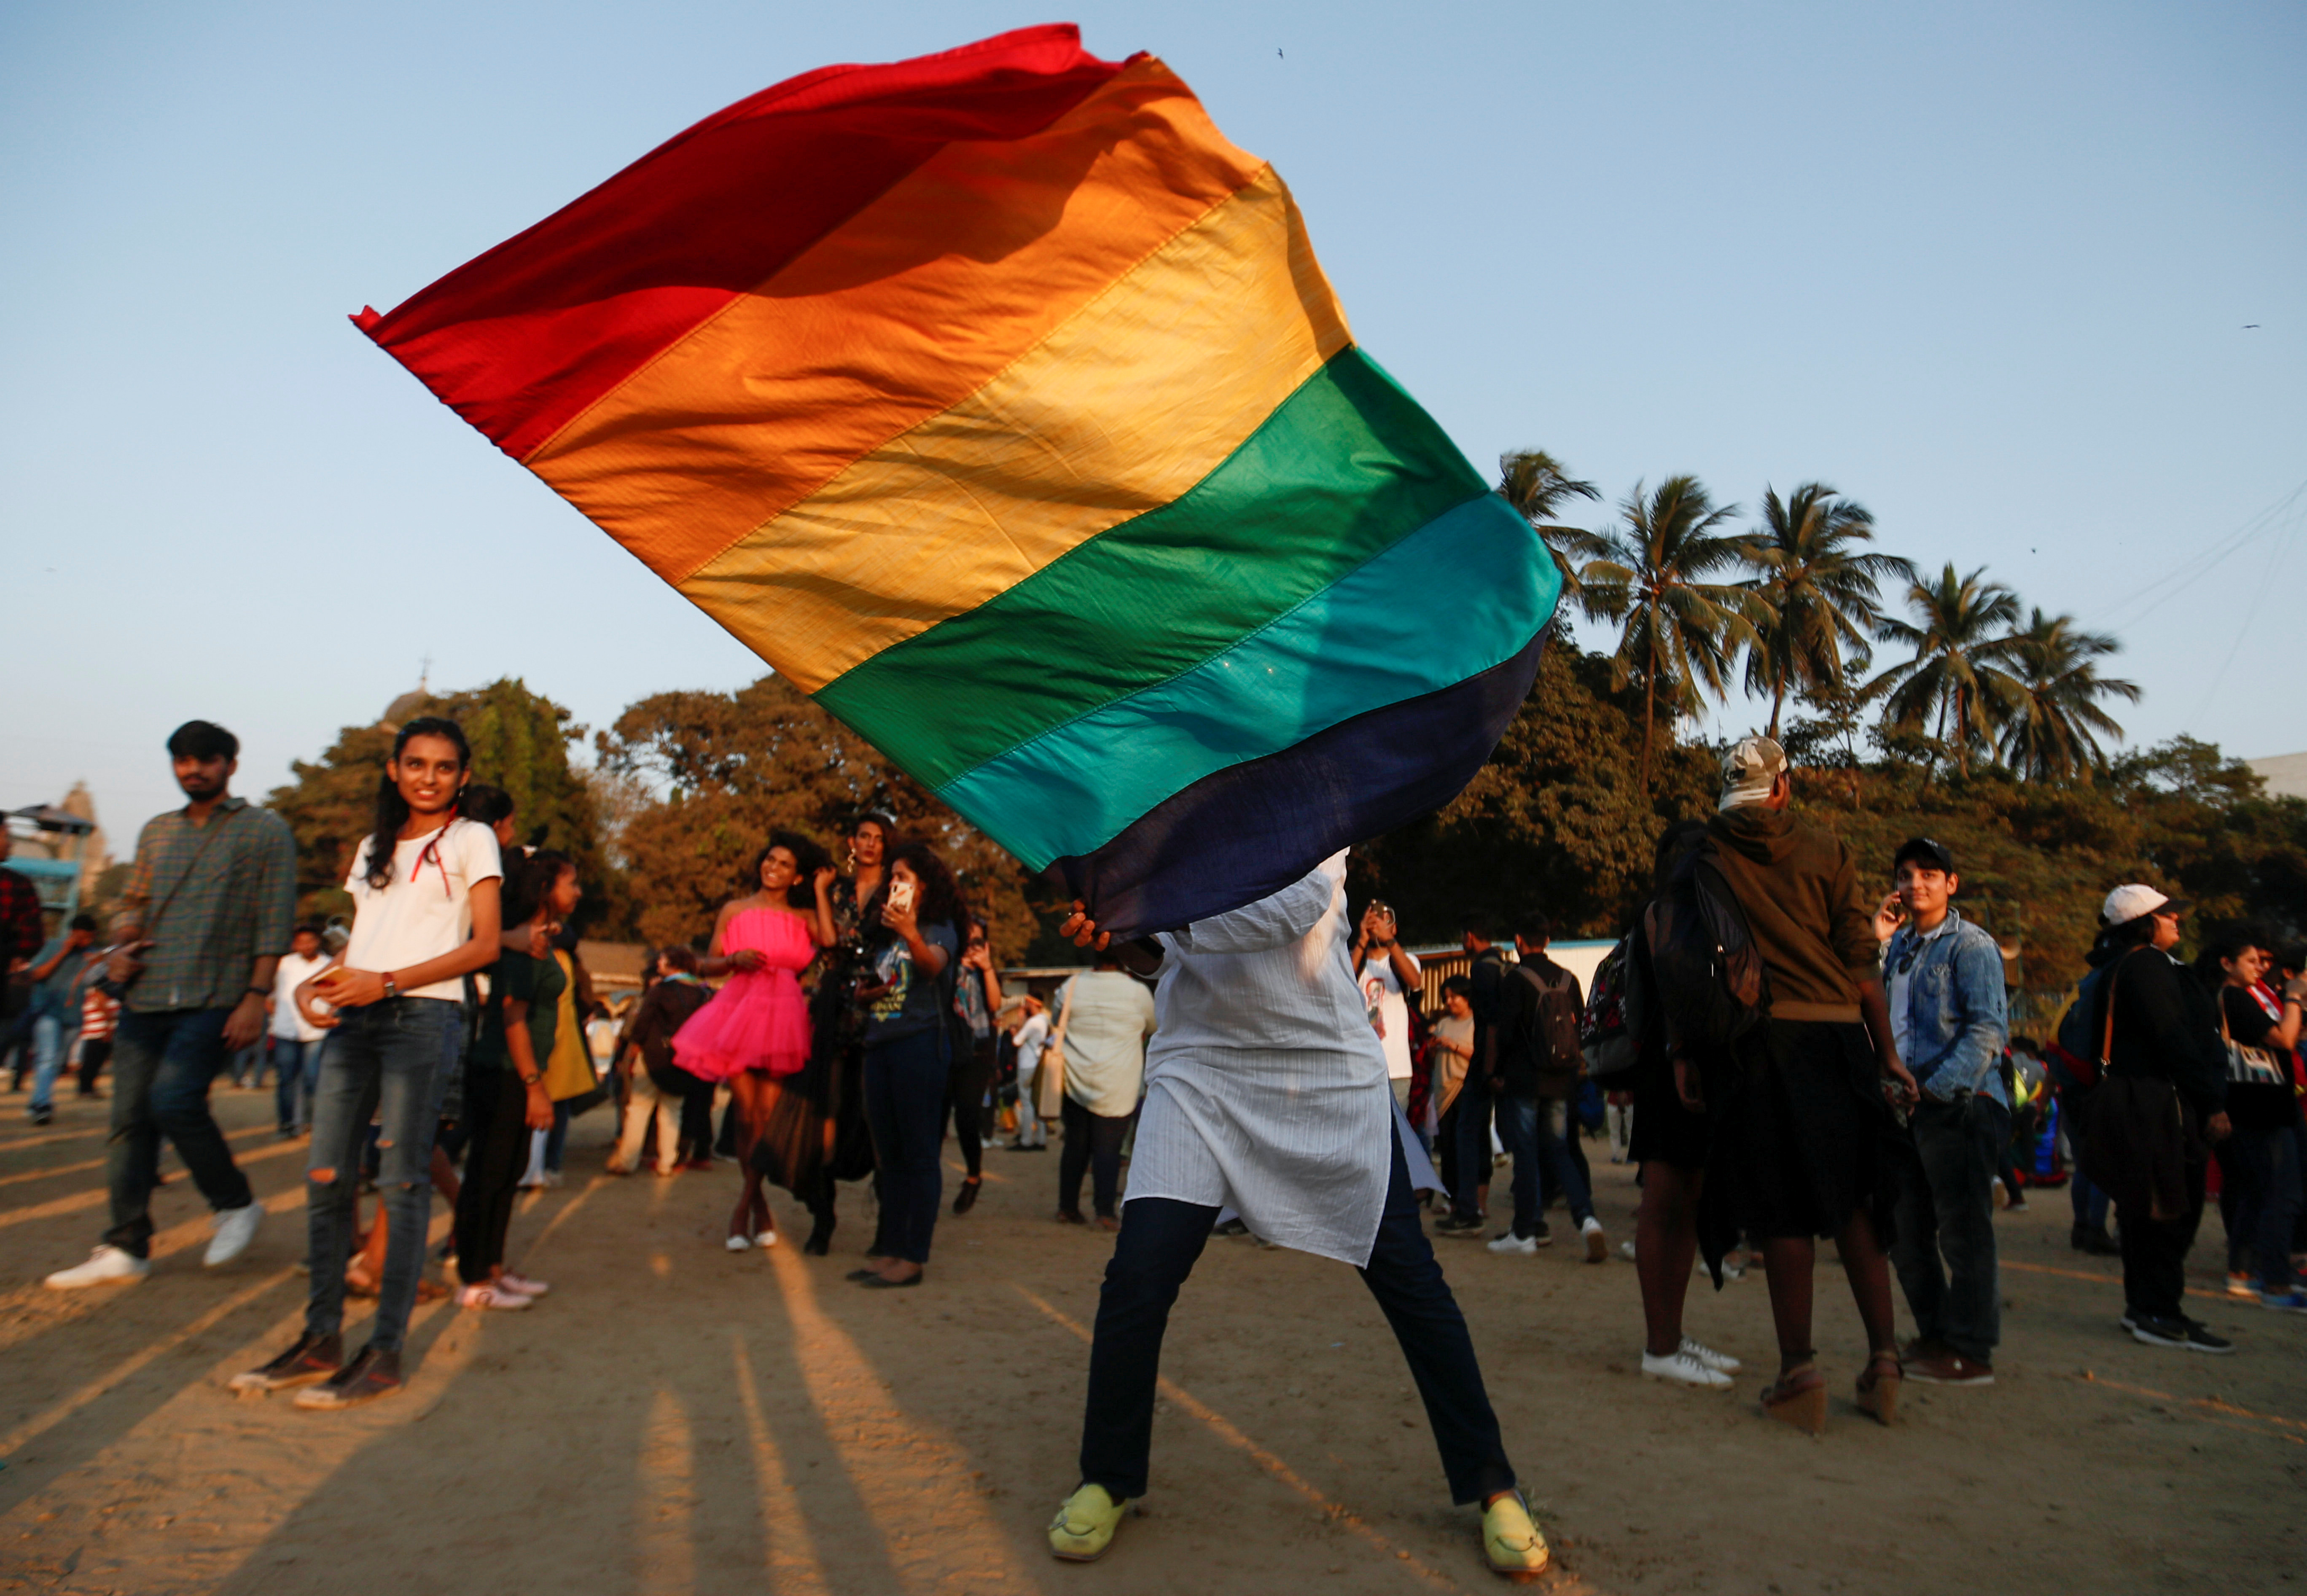 A participant waves a flag during Queer Azadi Pride, an event promoting gay, lesbian, bisexual and transgender rights, in Mumbai, India, February 1, 2020. REUTERS/Francis Mascarenhas